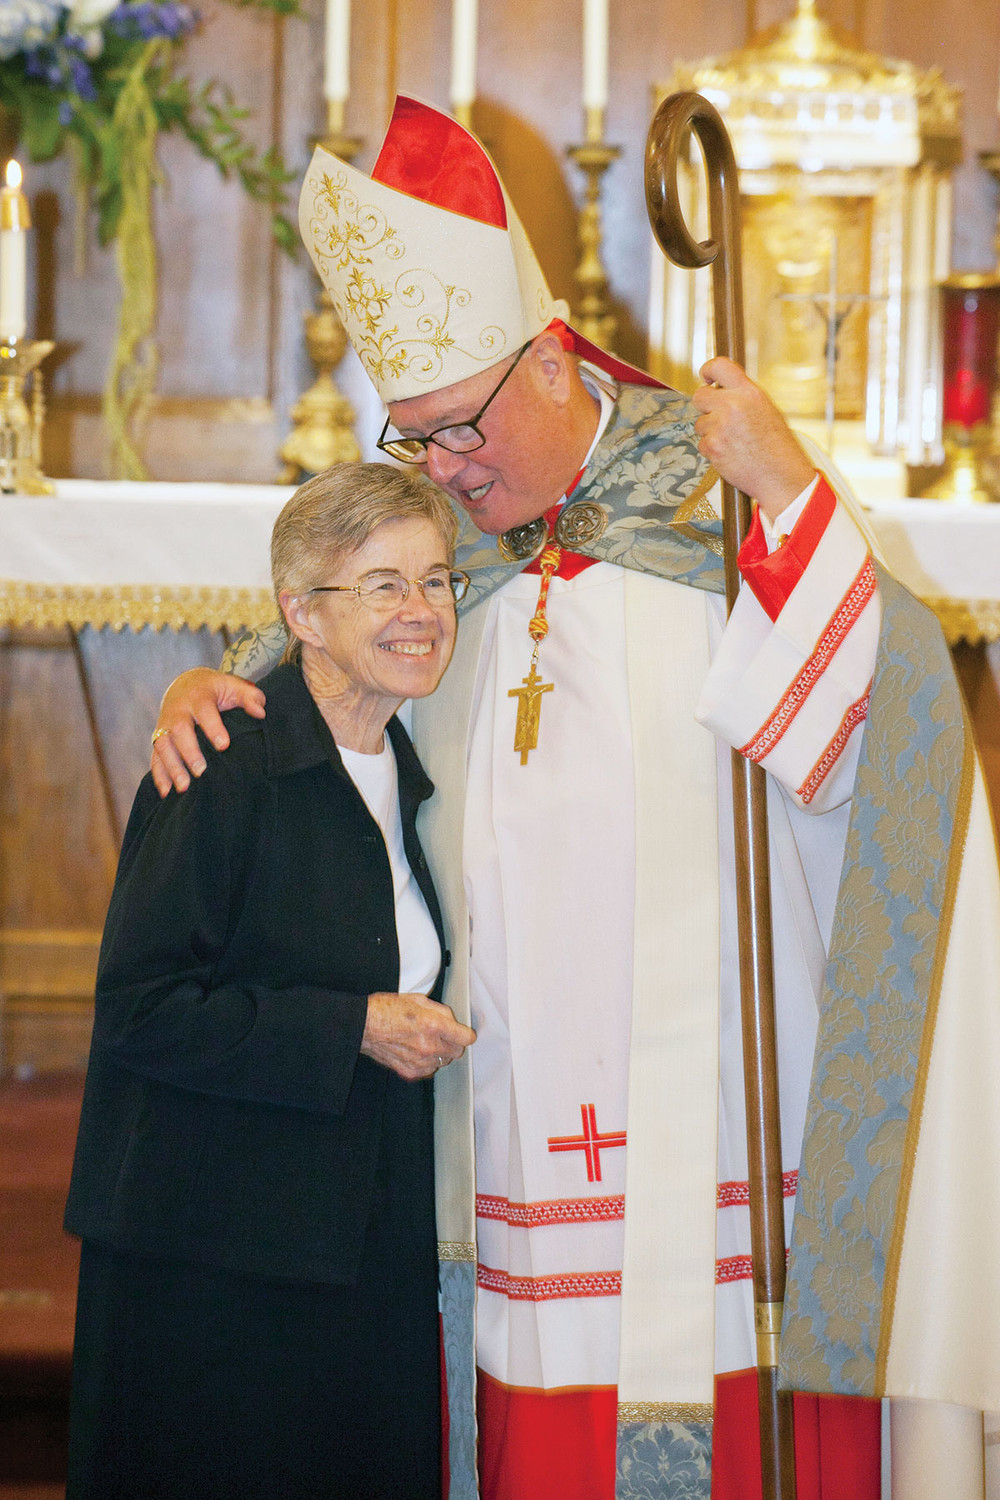 Cardinal Dolan congratulates Sister Kathleen Treanor, P.V.B.M., who renewed her vows to celebrate 60 years with the Sisters of the Presentation of the Blessed Virgin Mary.